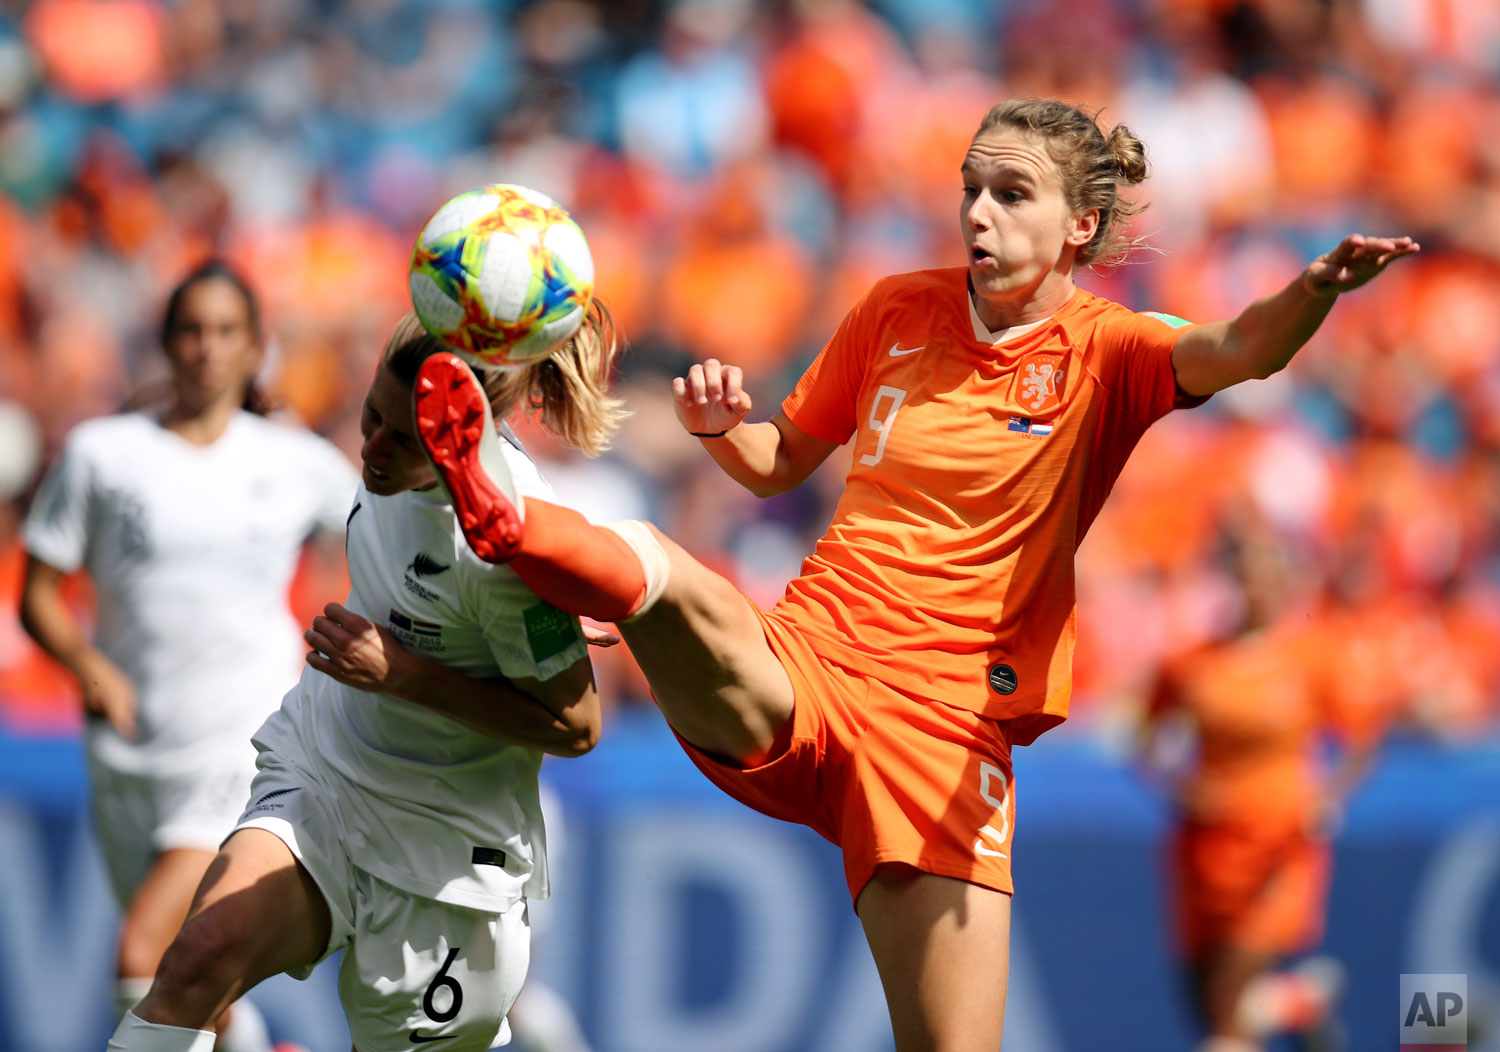 Netherlands' Vivianne Miedemam, right, kicks the ball challenged by New Zealand's Rebekah Stott during the Women's World Cup Group E soccer match between New Zealand and the Netherlands in Le Havre, France, Tuesday, June 11, 2019. (AP Photo/Francisco Seco)